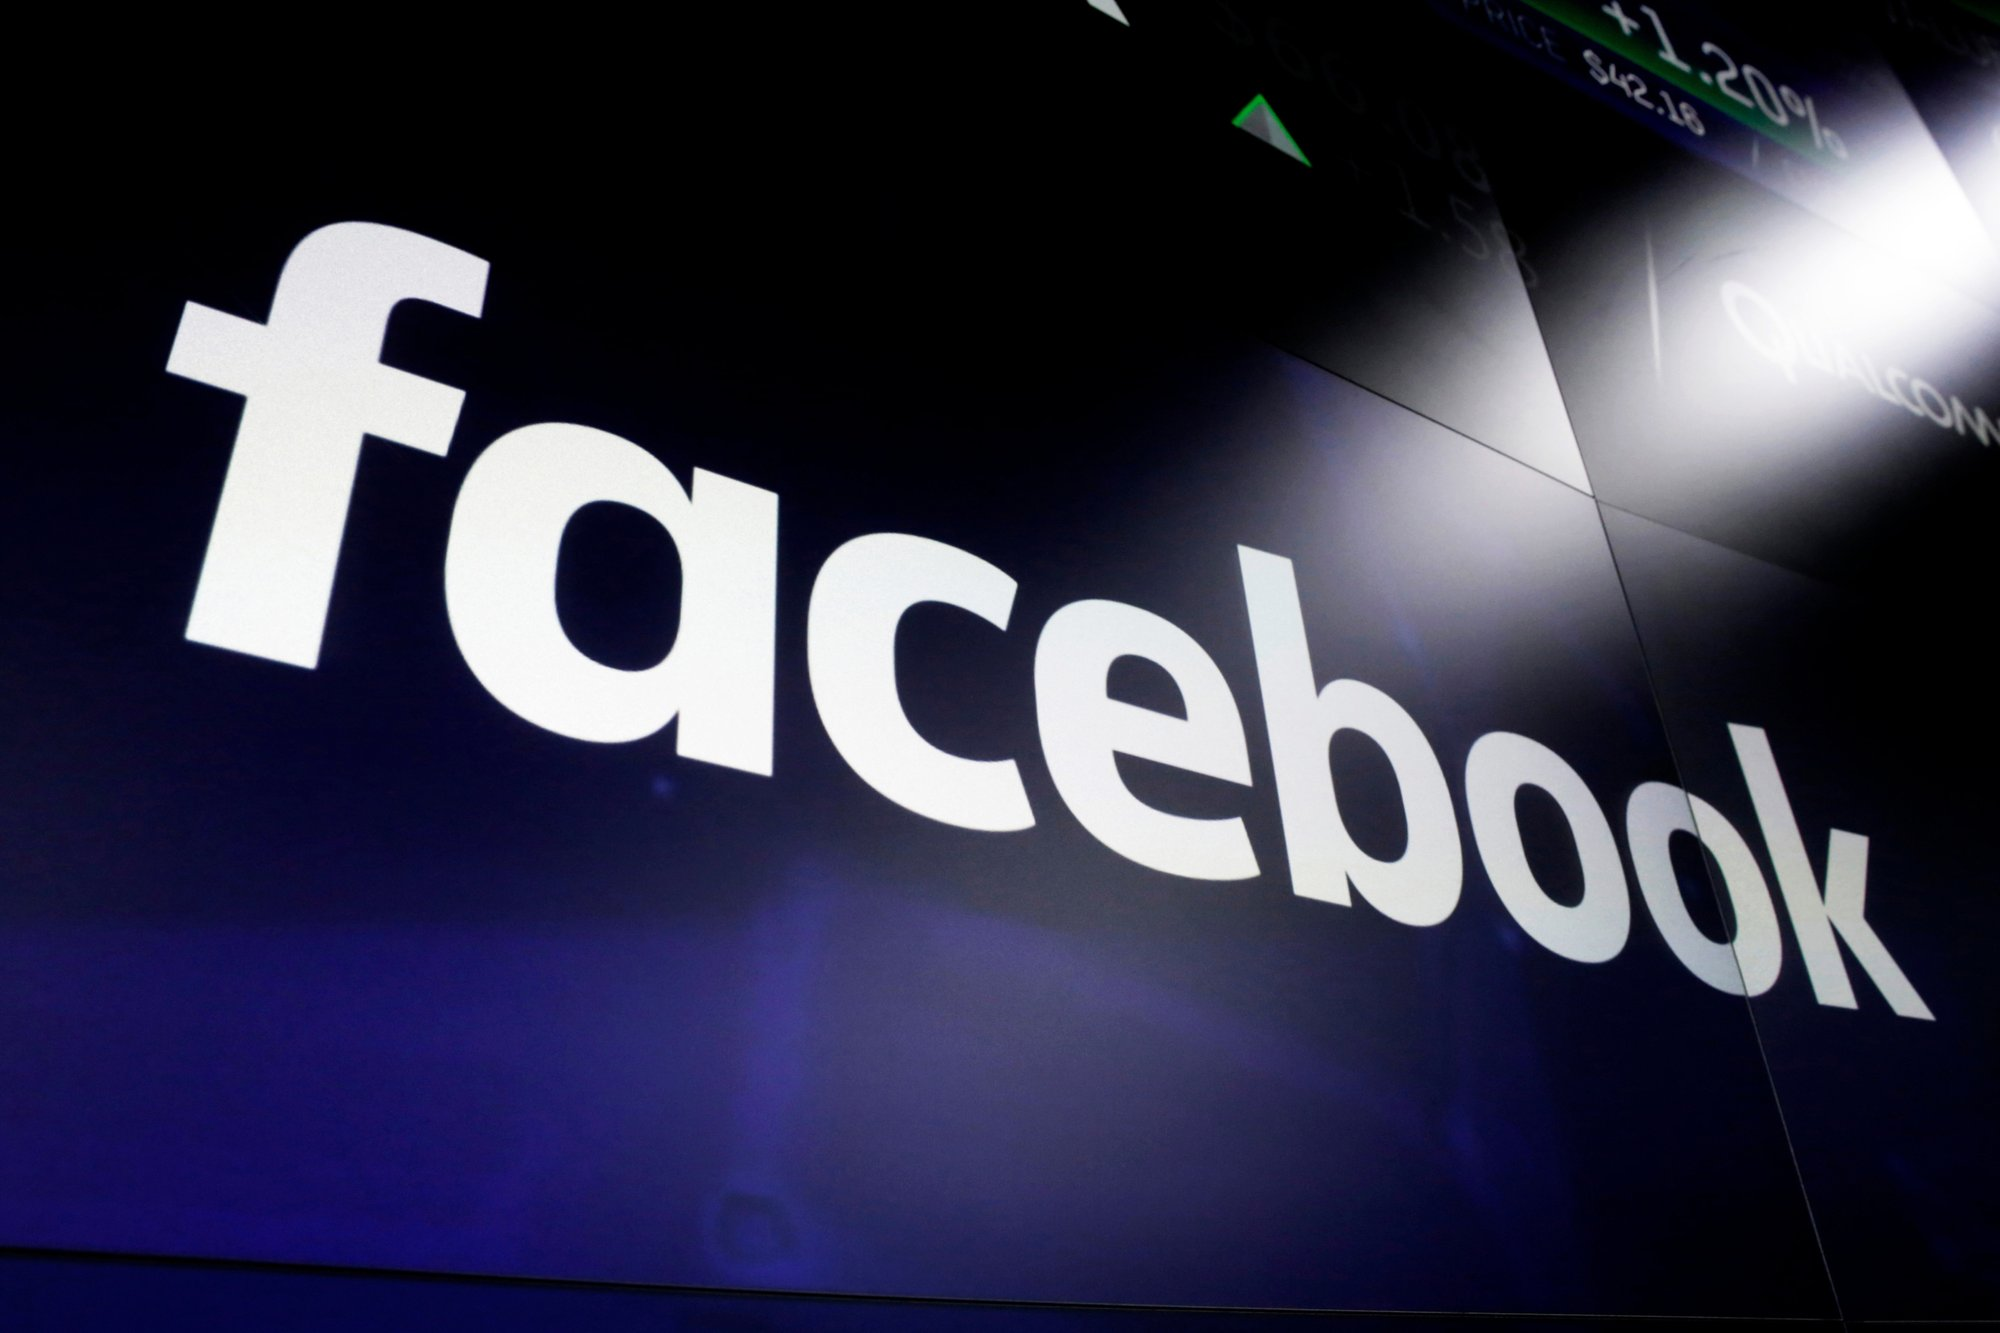 Facebook moves to target misinformation before election